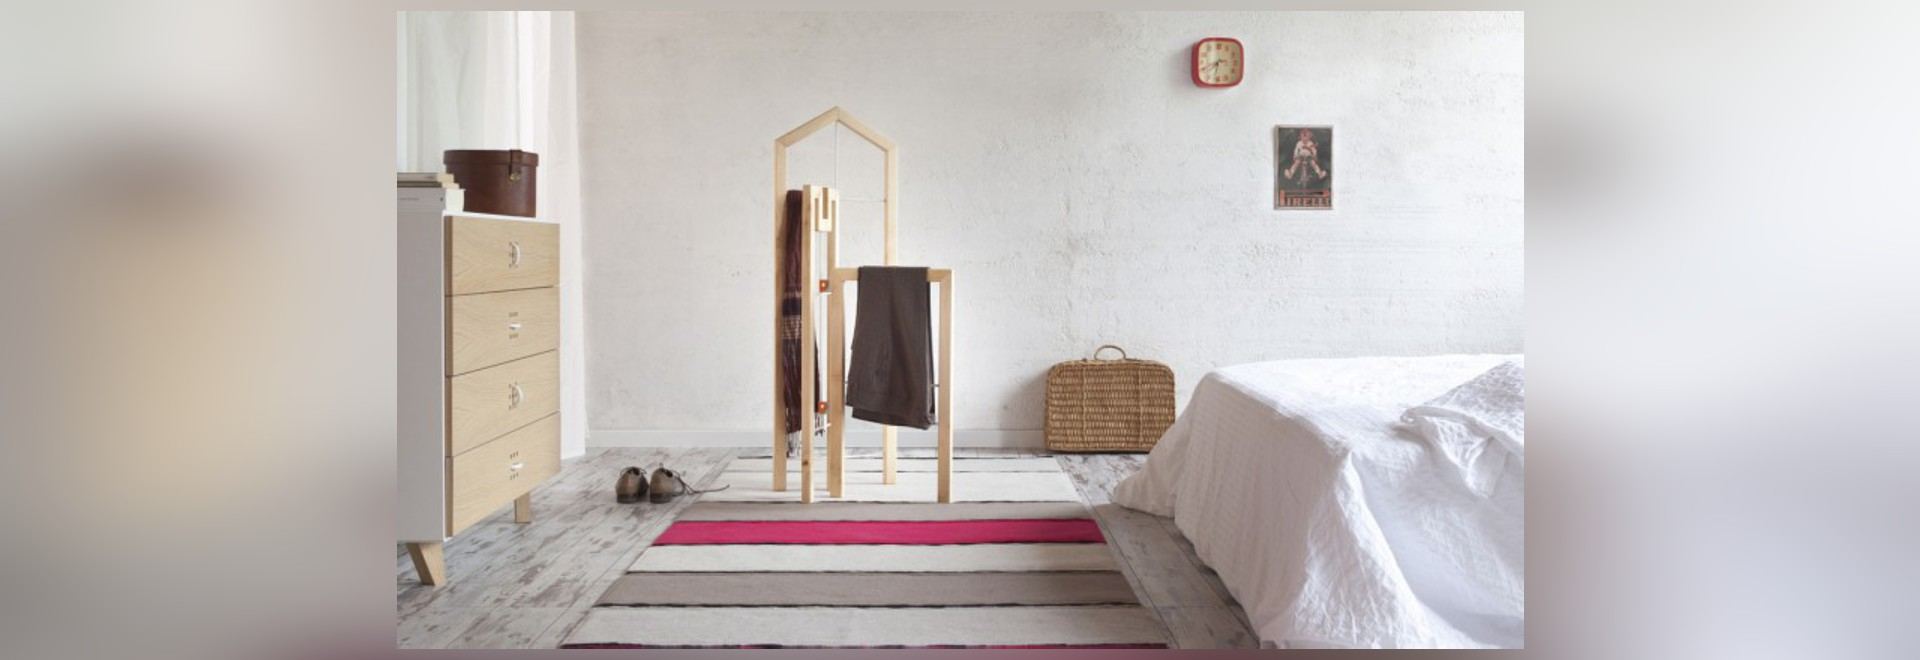 TUSCIAO CLOTHES VALET BY ANDREA BRUGNERA FOR FORMABILIO